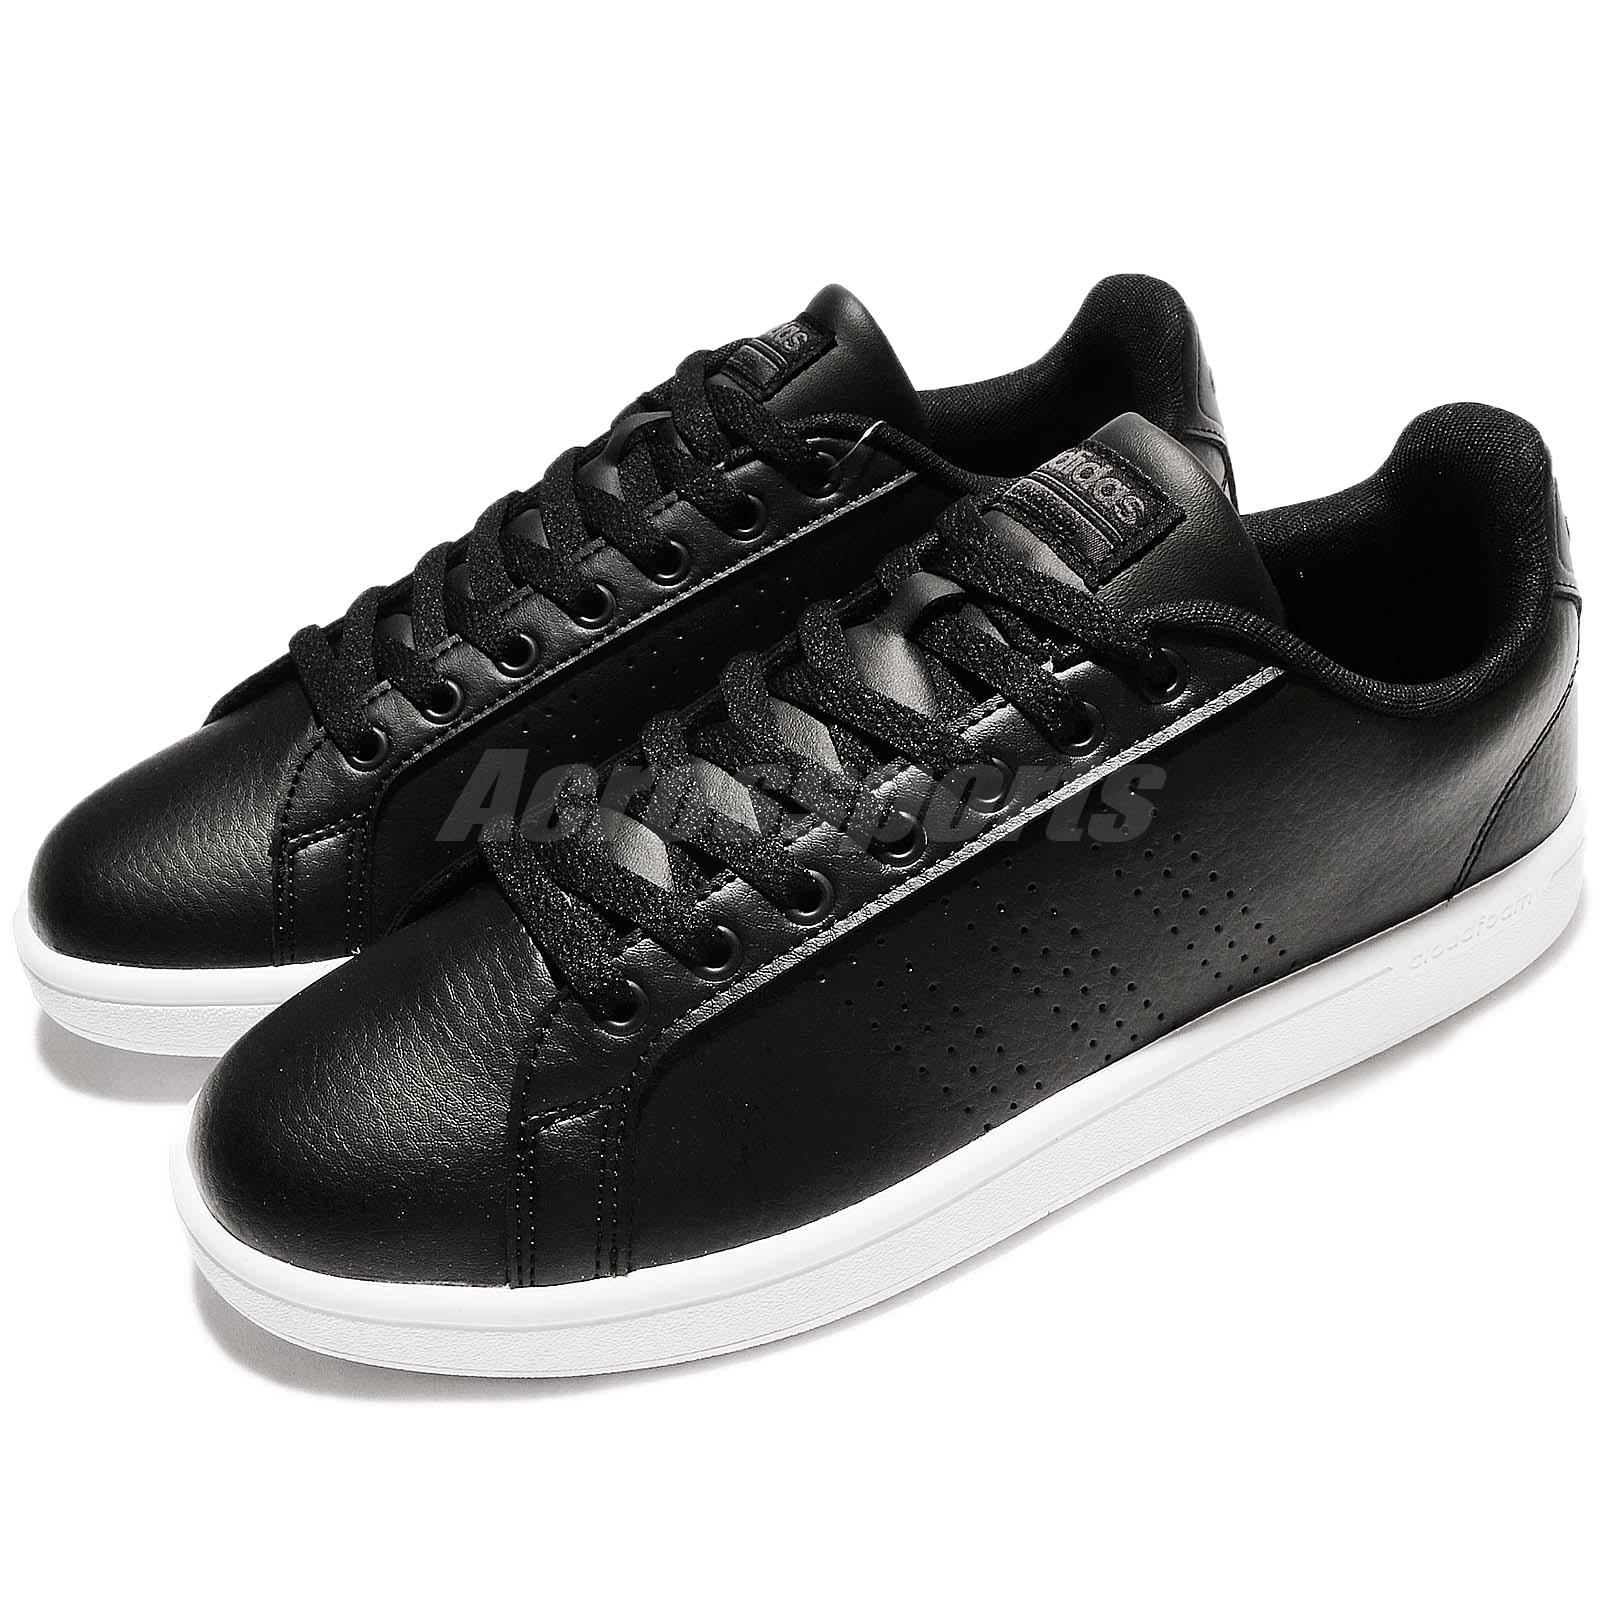 buy online 593f6 6f961 Details about adidas Neo Cloudfoam Advantage Clean Black White Leather Men  Shoe Sneaker AW3915